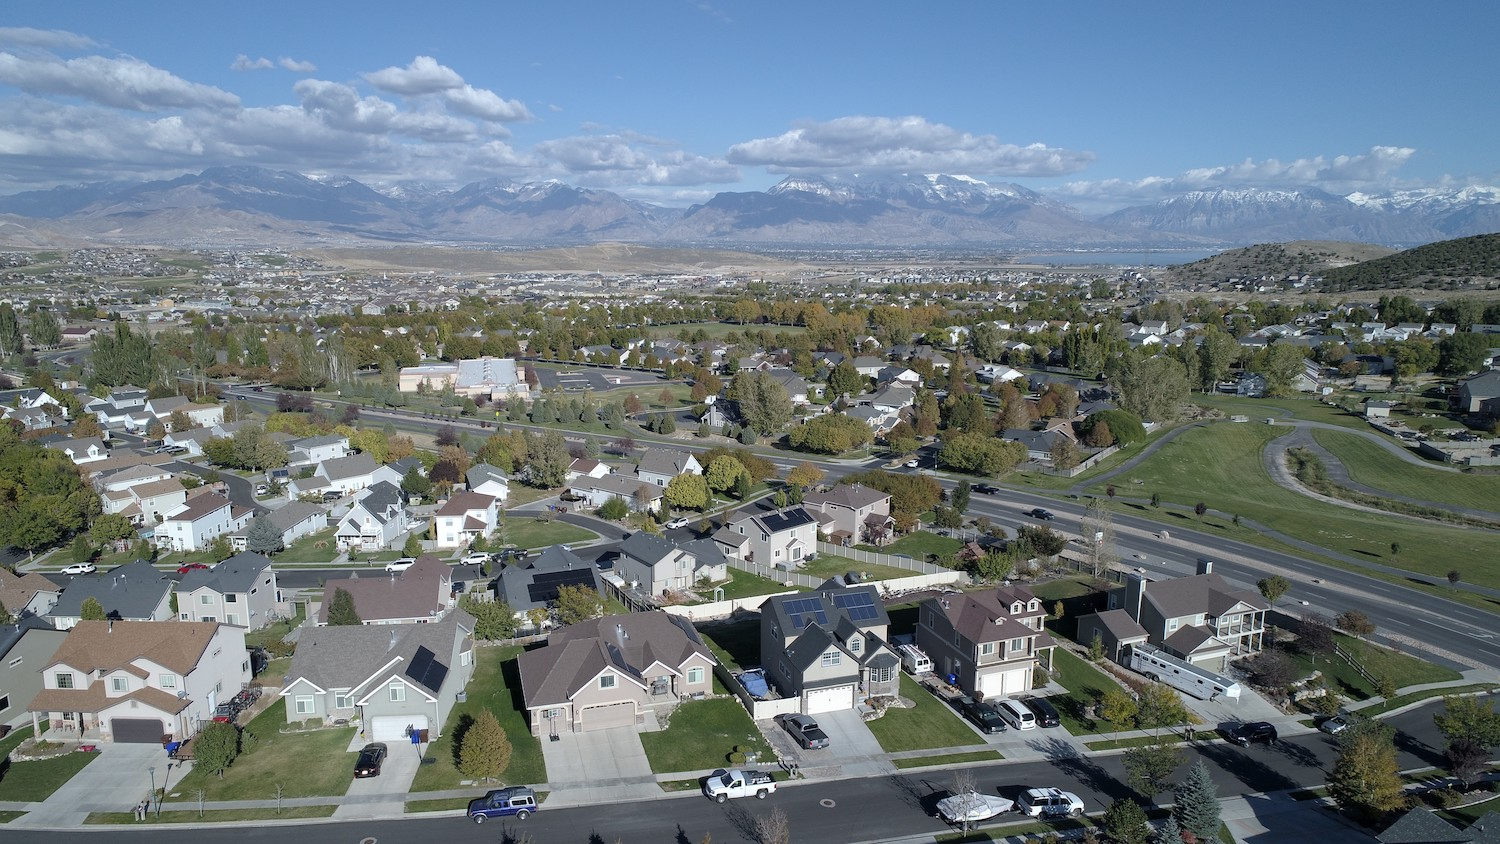 5 Areas That Utah Realtors Think Will Be Booming in 5-10 Years